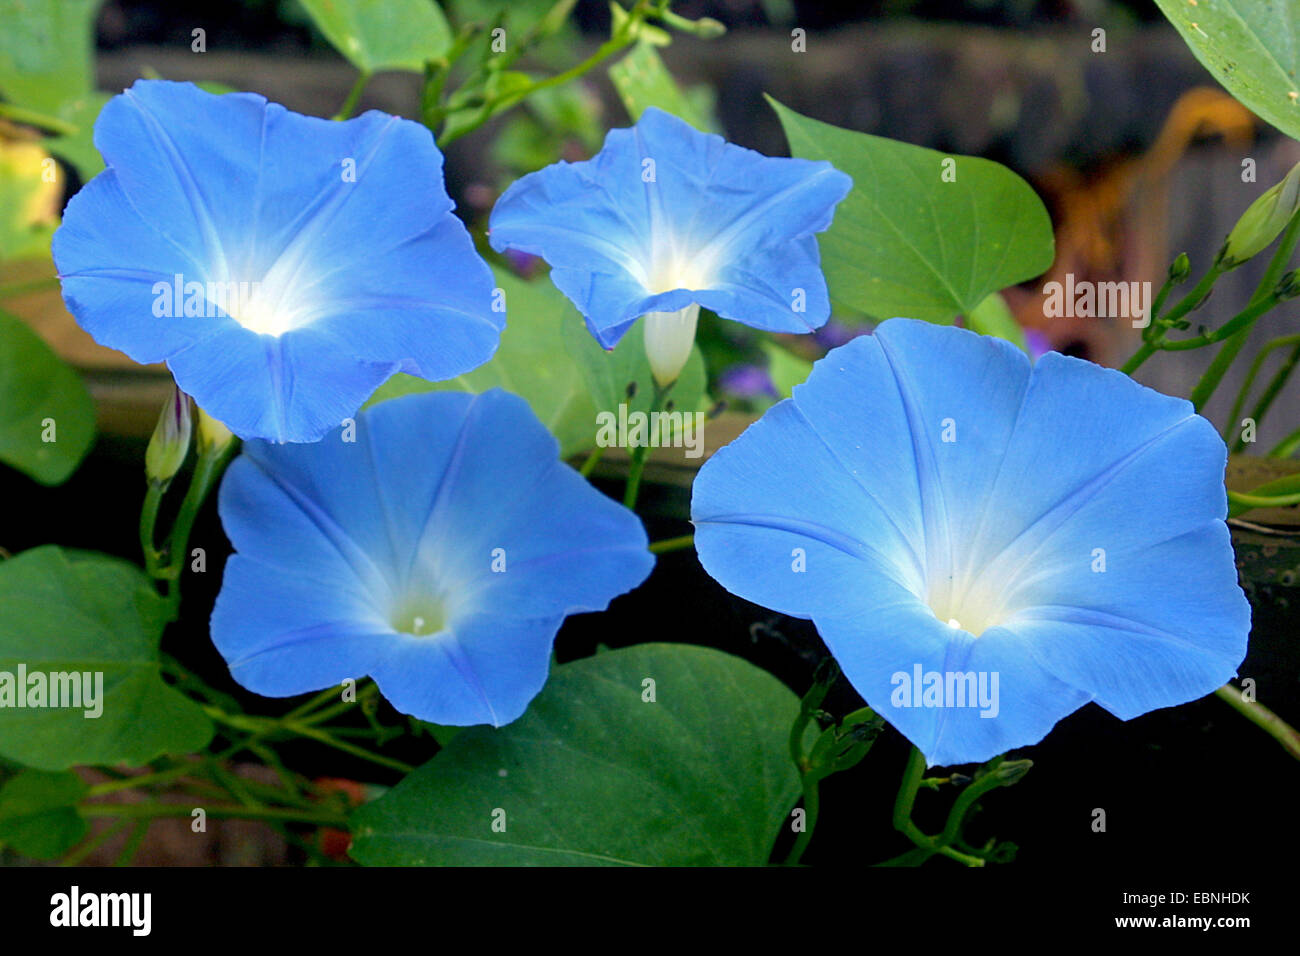 morning glory (Ipomoea tricolor 'Heavenly Blue', Ipomoea tricolor Heavenly Blue), flowers - Stock Image